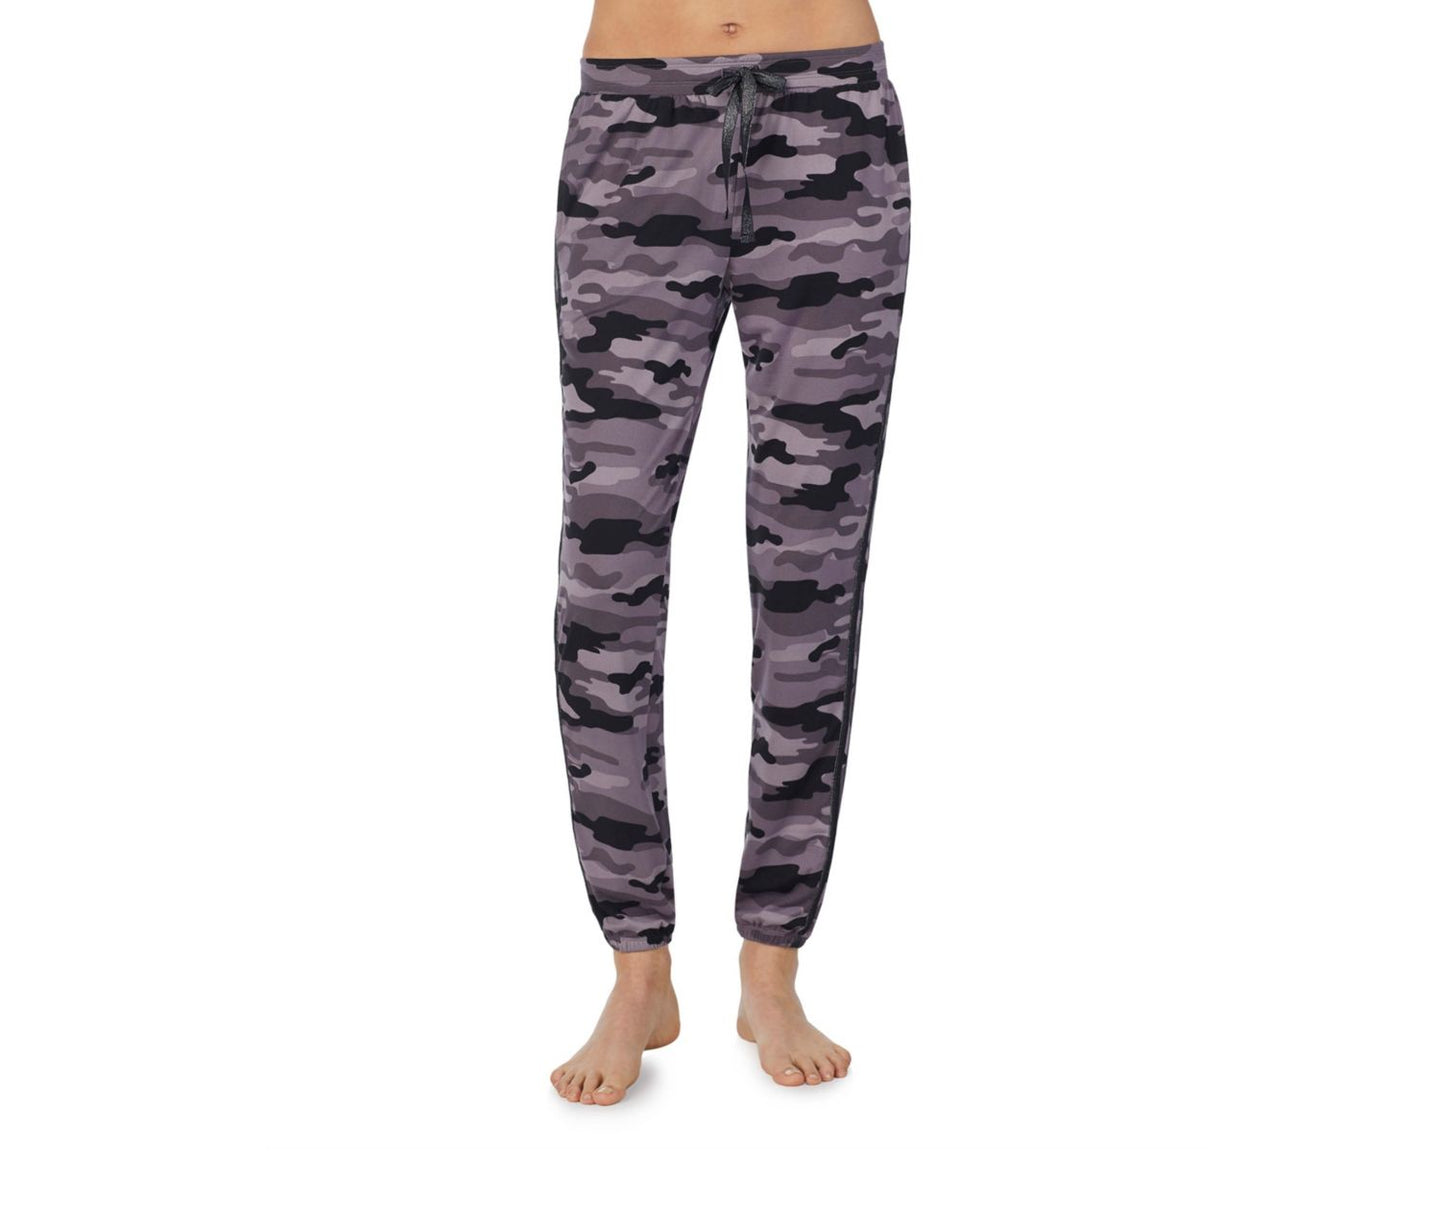 COOL GIRLS LOUNGE TRACK PANT CAMOUFLAGE - APPAREL - Betsey Johnson